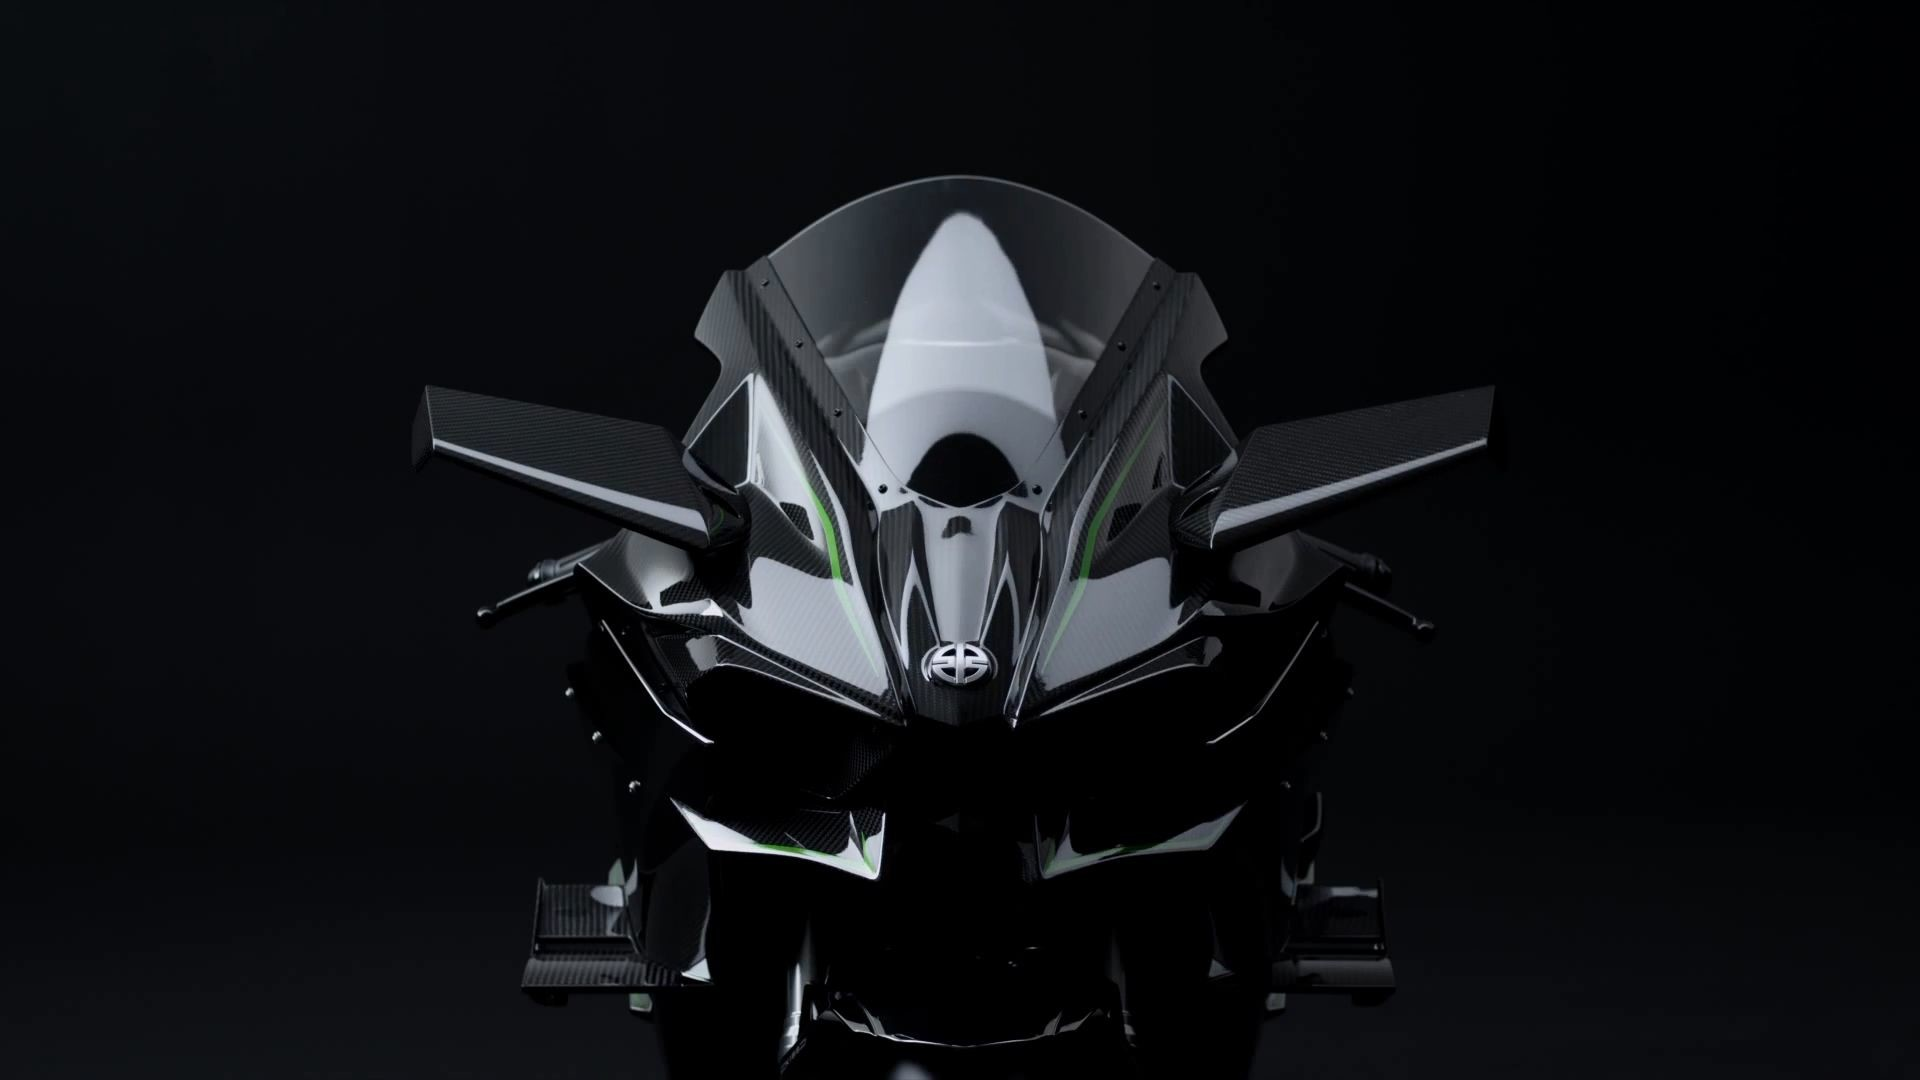 Ninja H2R HD Wallpapers Download 2048x1152 Share